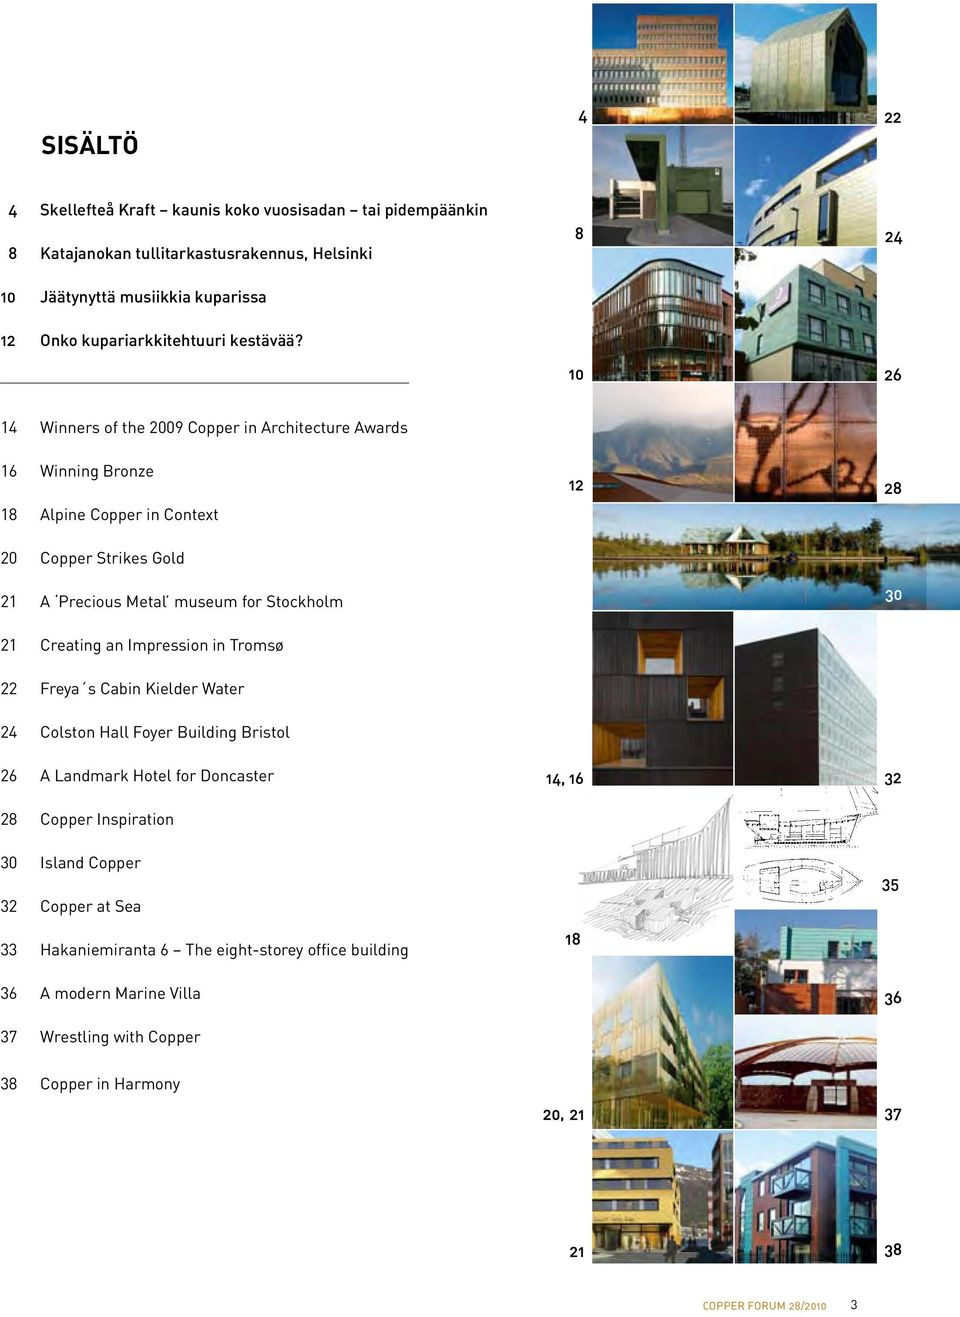 14 Winners of the 2009 Copper in Architecture Awards 16 Winning Bronze 18 Alpine Copper in Context 20 Copper Strikes Gold 21 A Precious Metal museum for Stockholm 21